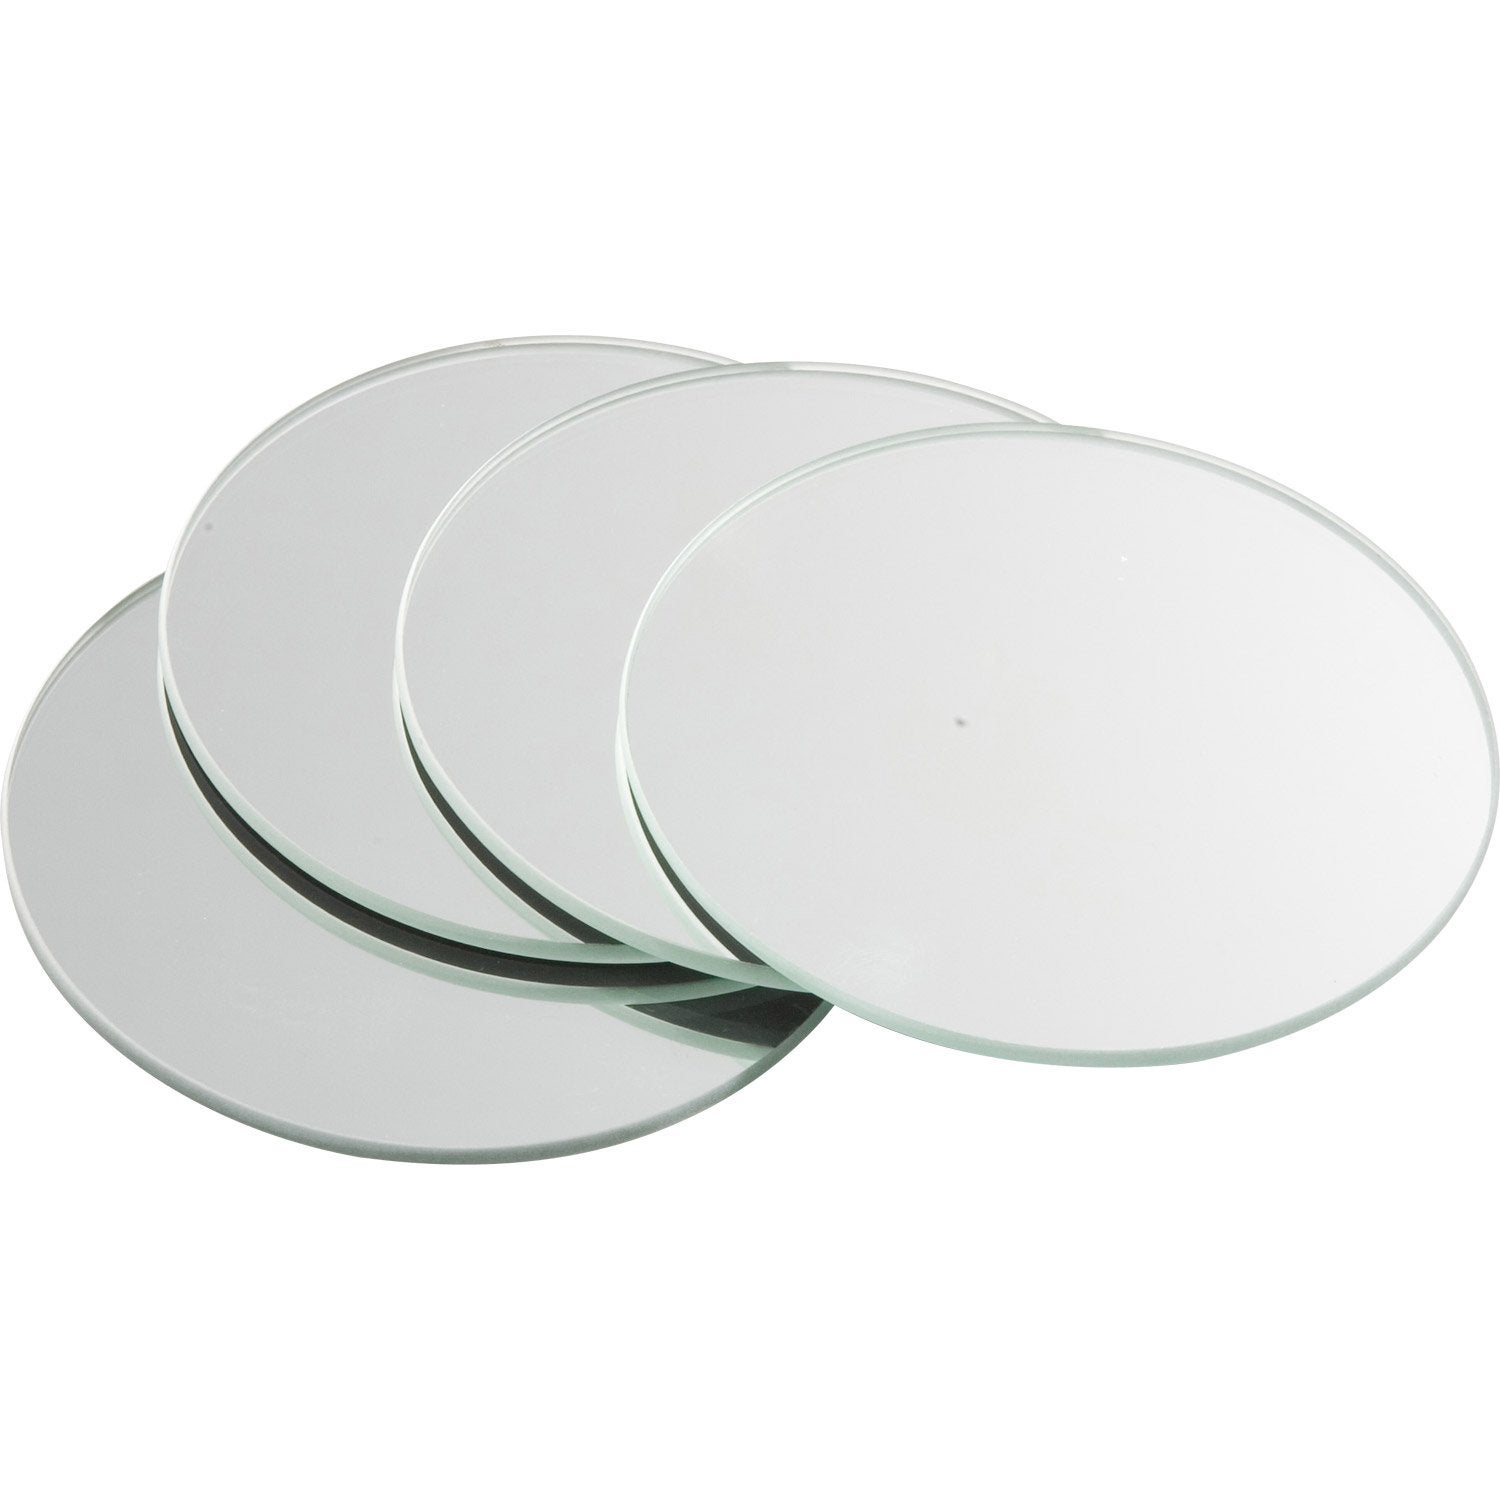 Miroir rond leroy merlin for Miroir decoratif leroy merlin